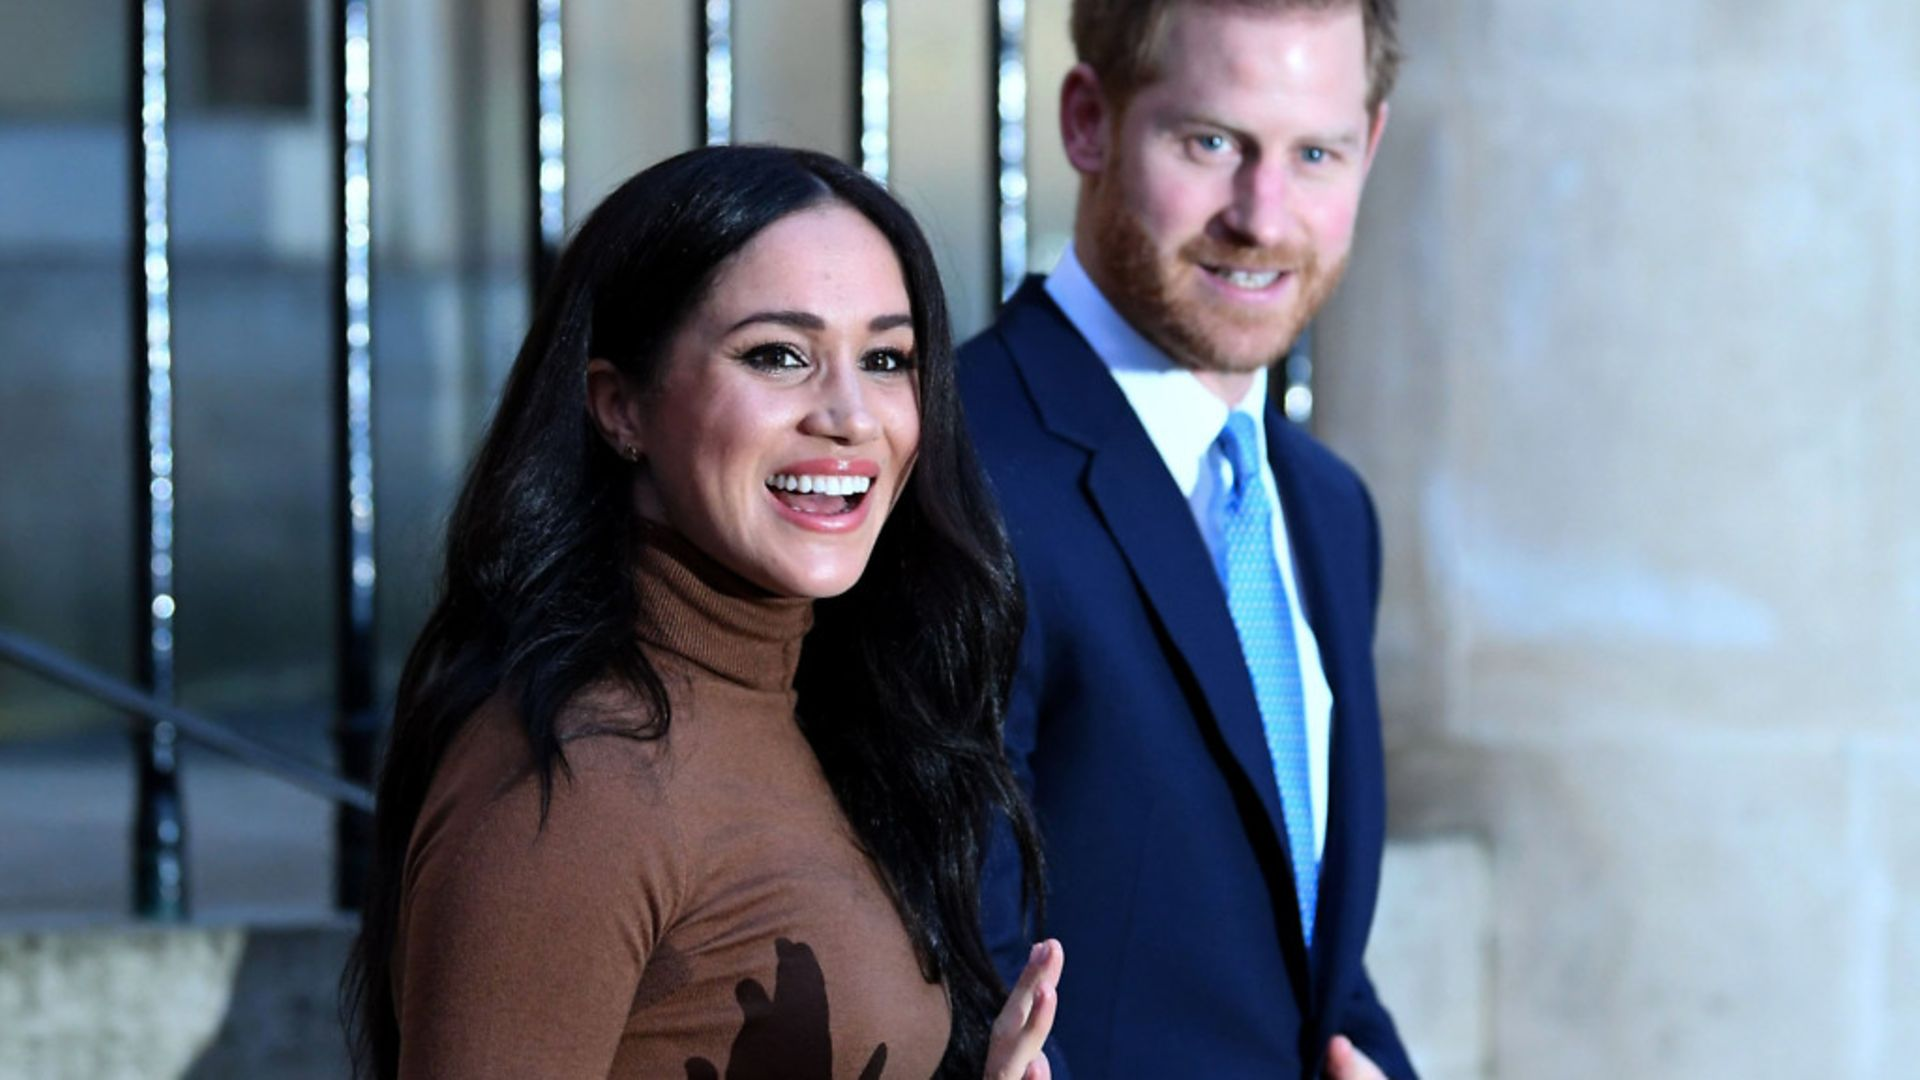 The Duke and Duchess of Sussex - Credit: PA Wire/PA Images